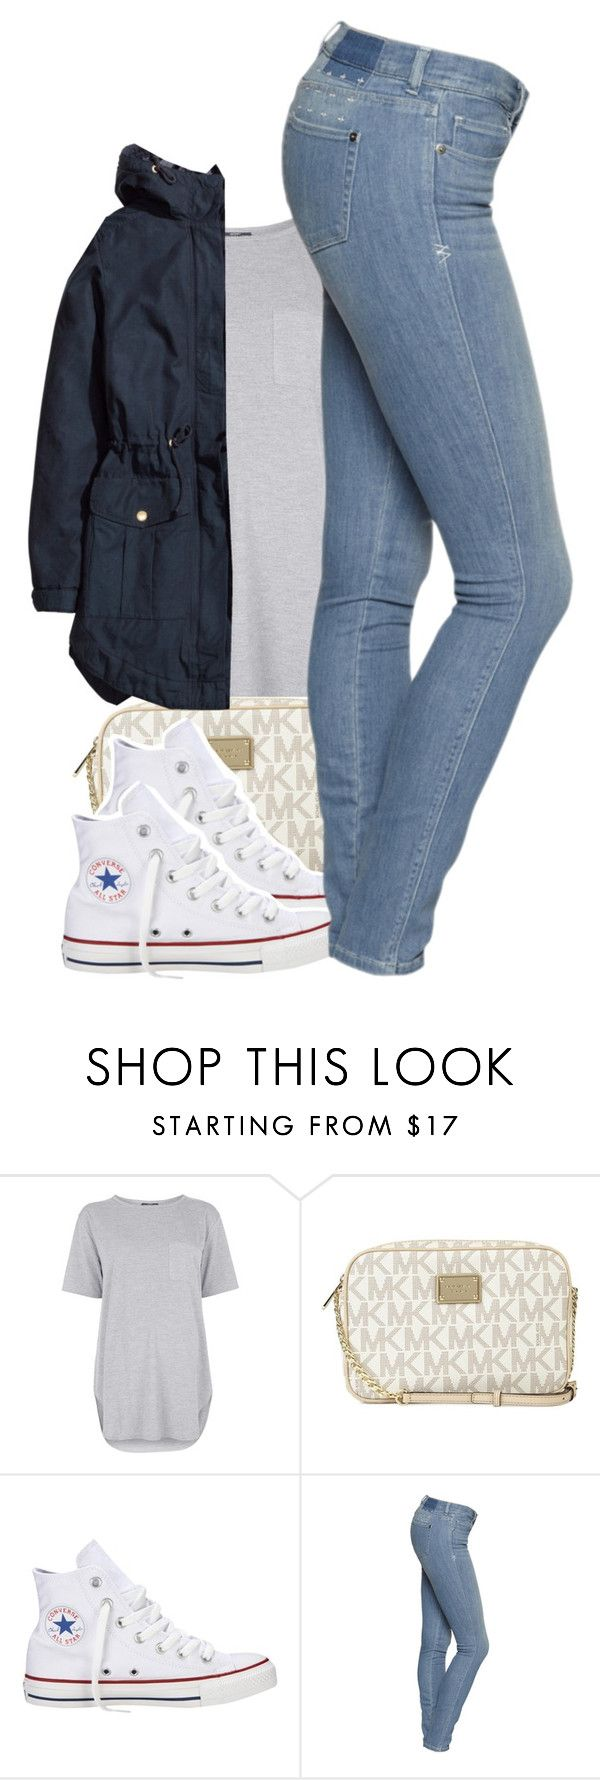 """Untitled #1758"" by toniiiiiiiiiiiiiii ❤ liked on Polyvore featuring Topshop, Michael Kors, Converse and H&M"